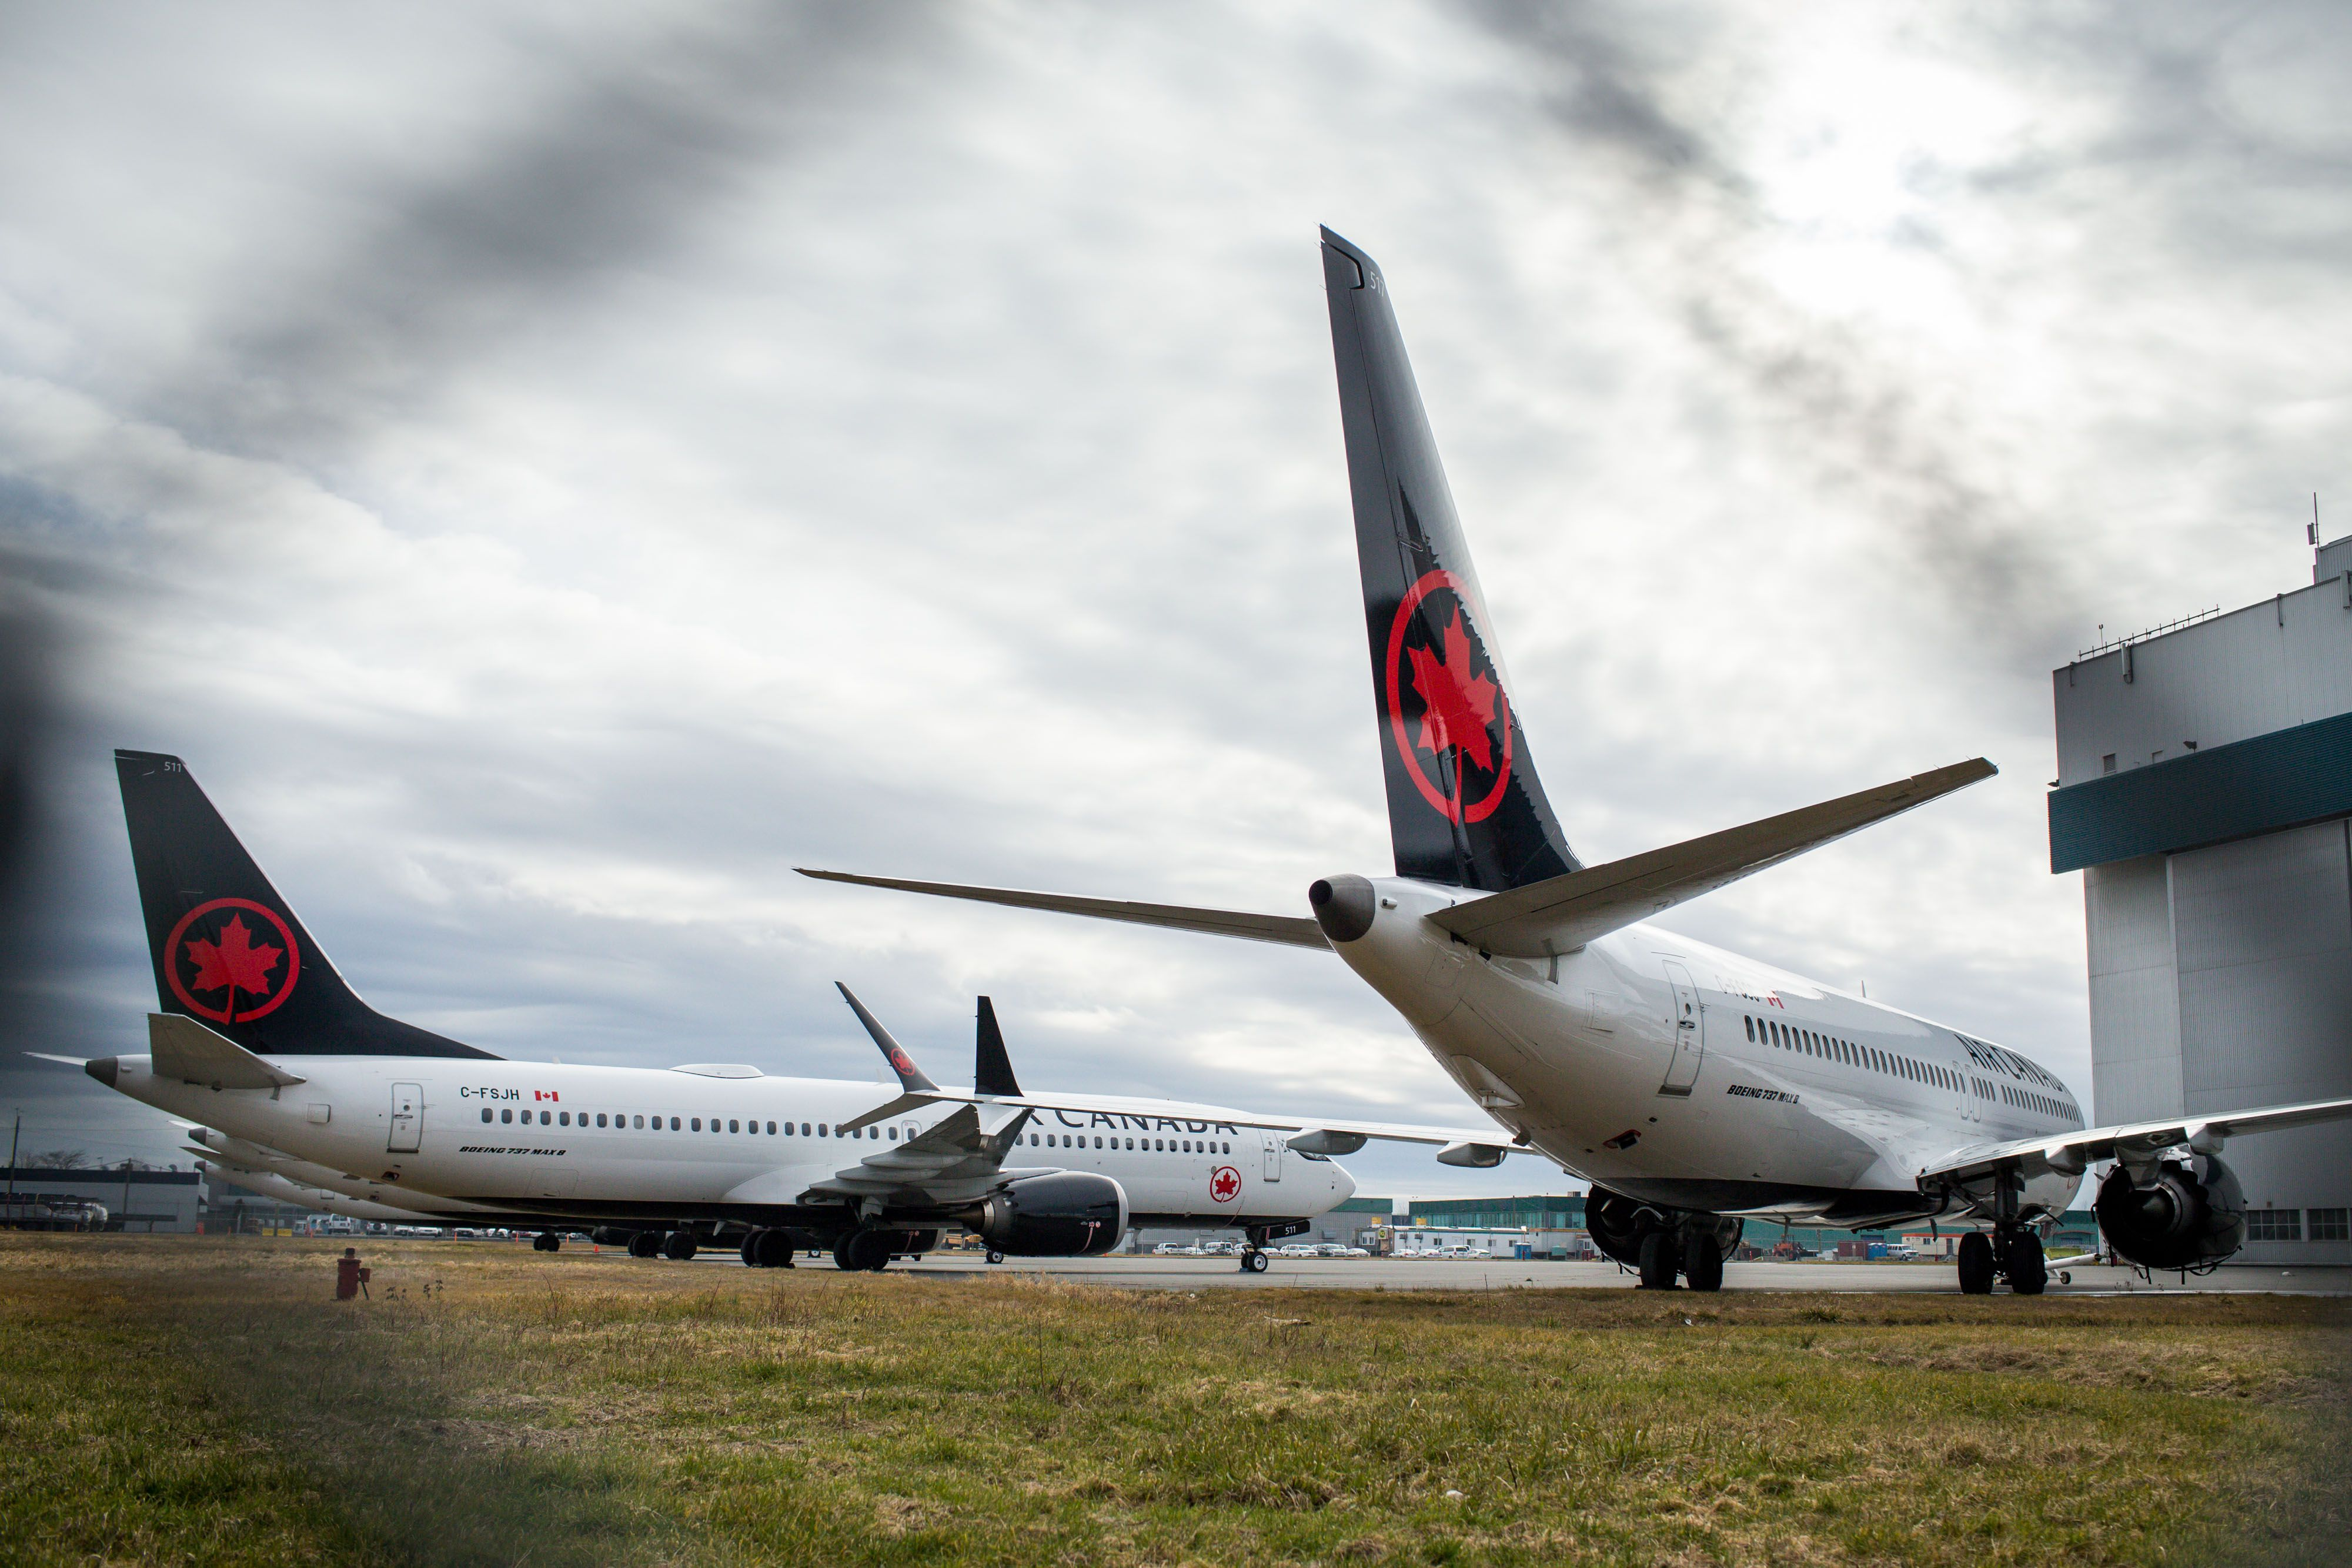 Air Canada, WestJet scramble to change schedules after grounding of